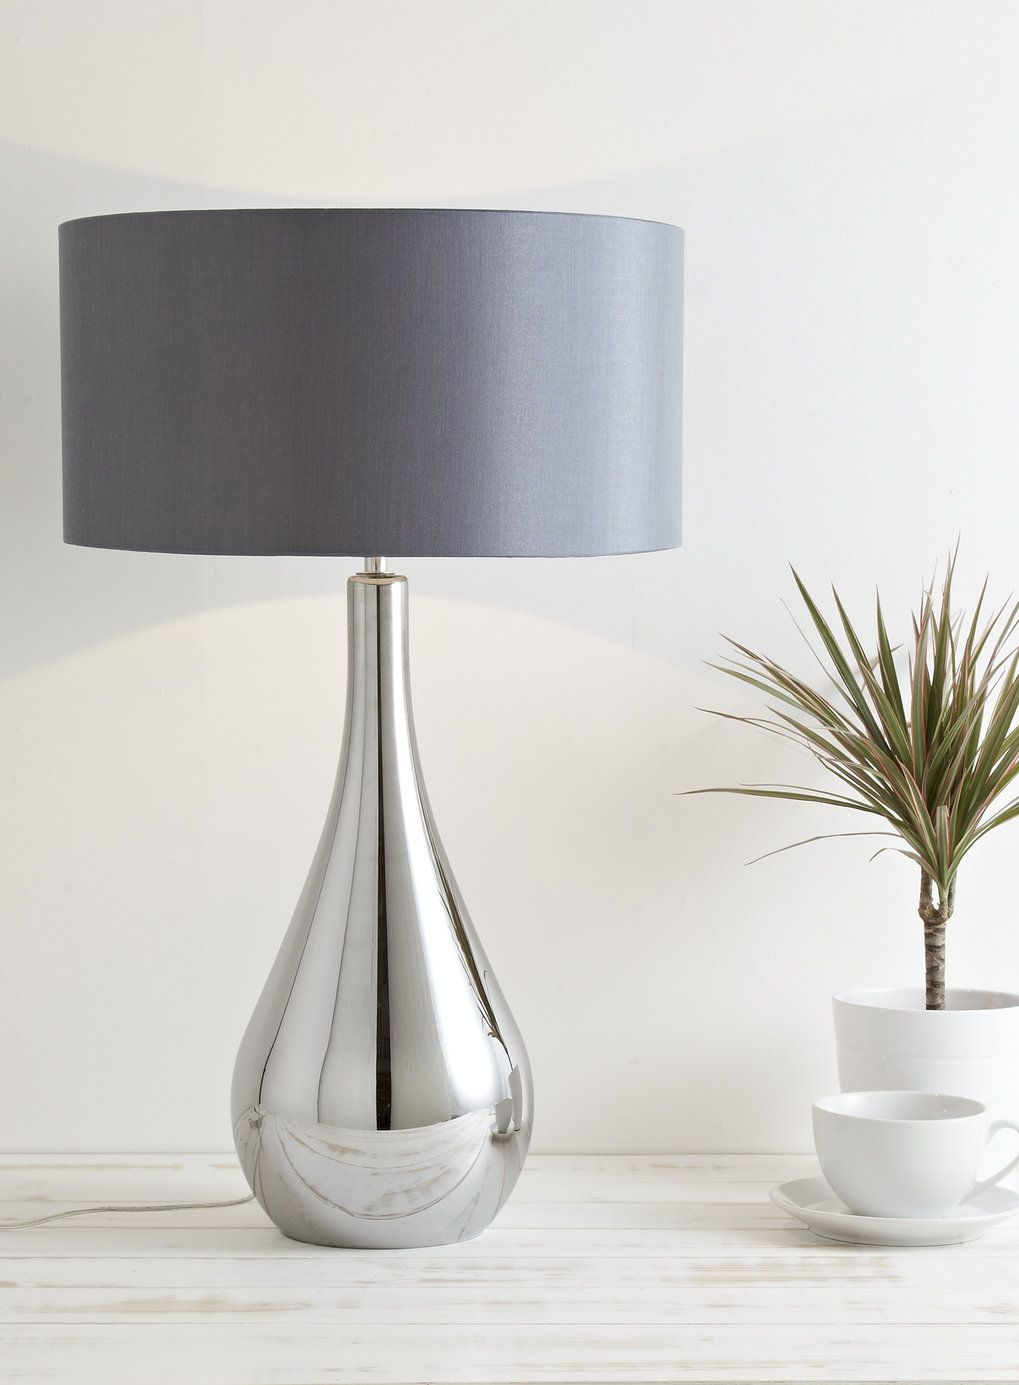 New lily drop table lamp bhs house ideas pinterest bhs new lily drop table lamp bhs mozeypictures Image collections